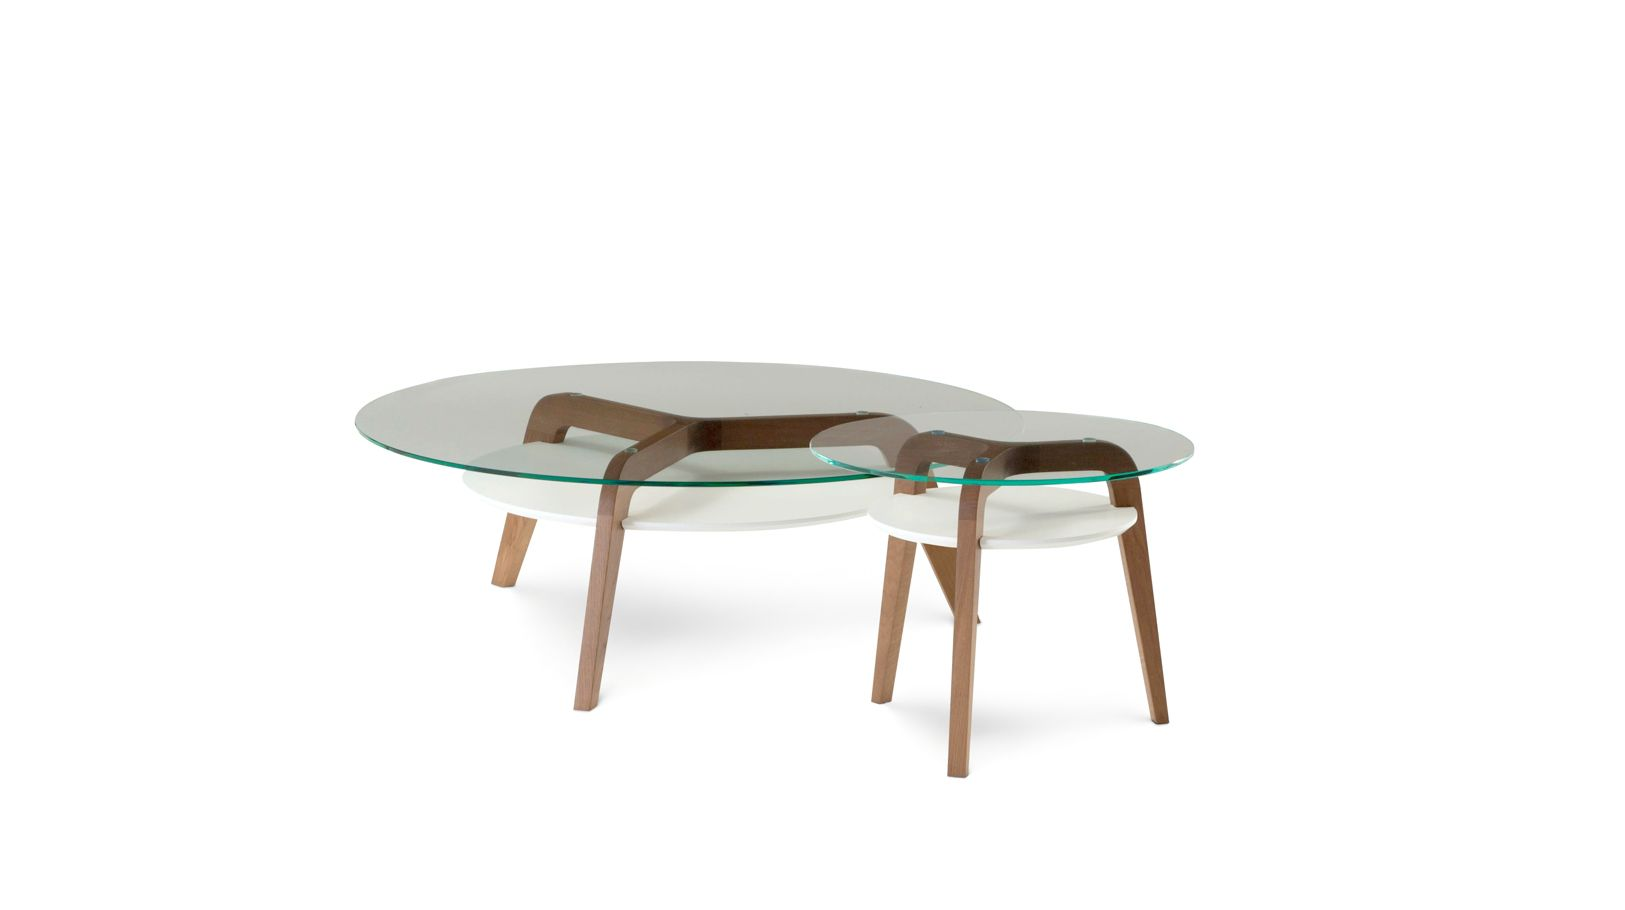 Flying glass occasional table roche bobois - Table ovale marbre roche bobois ...